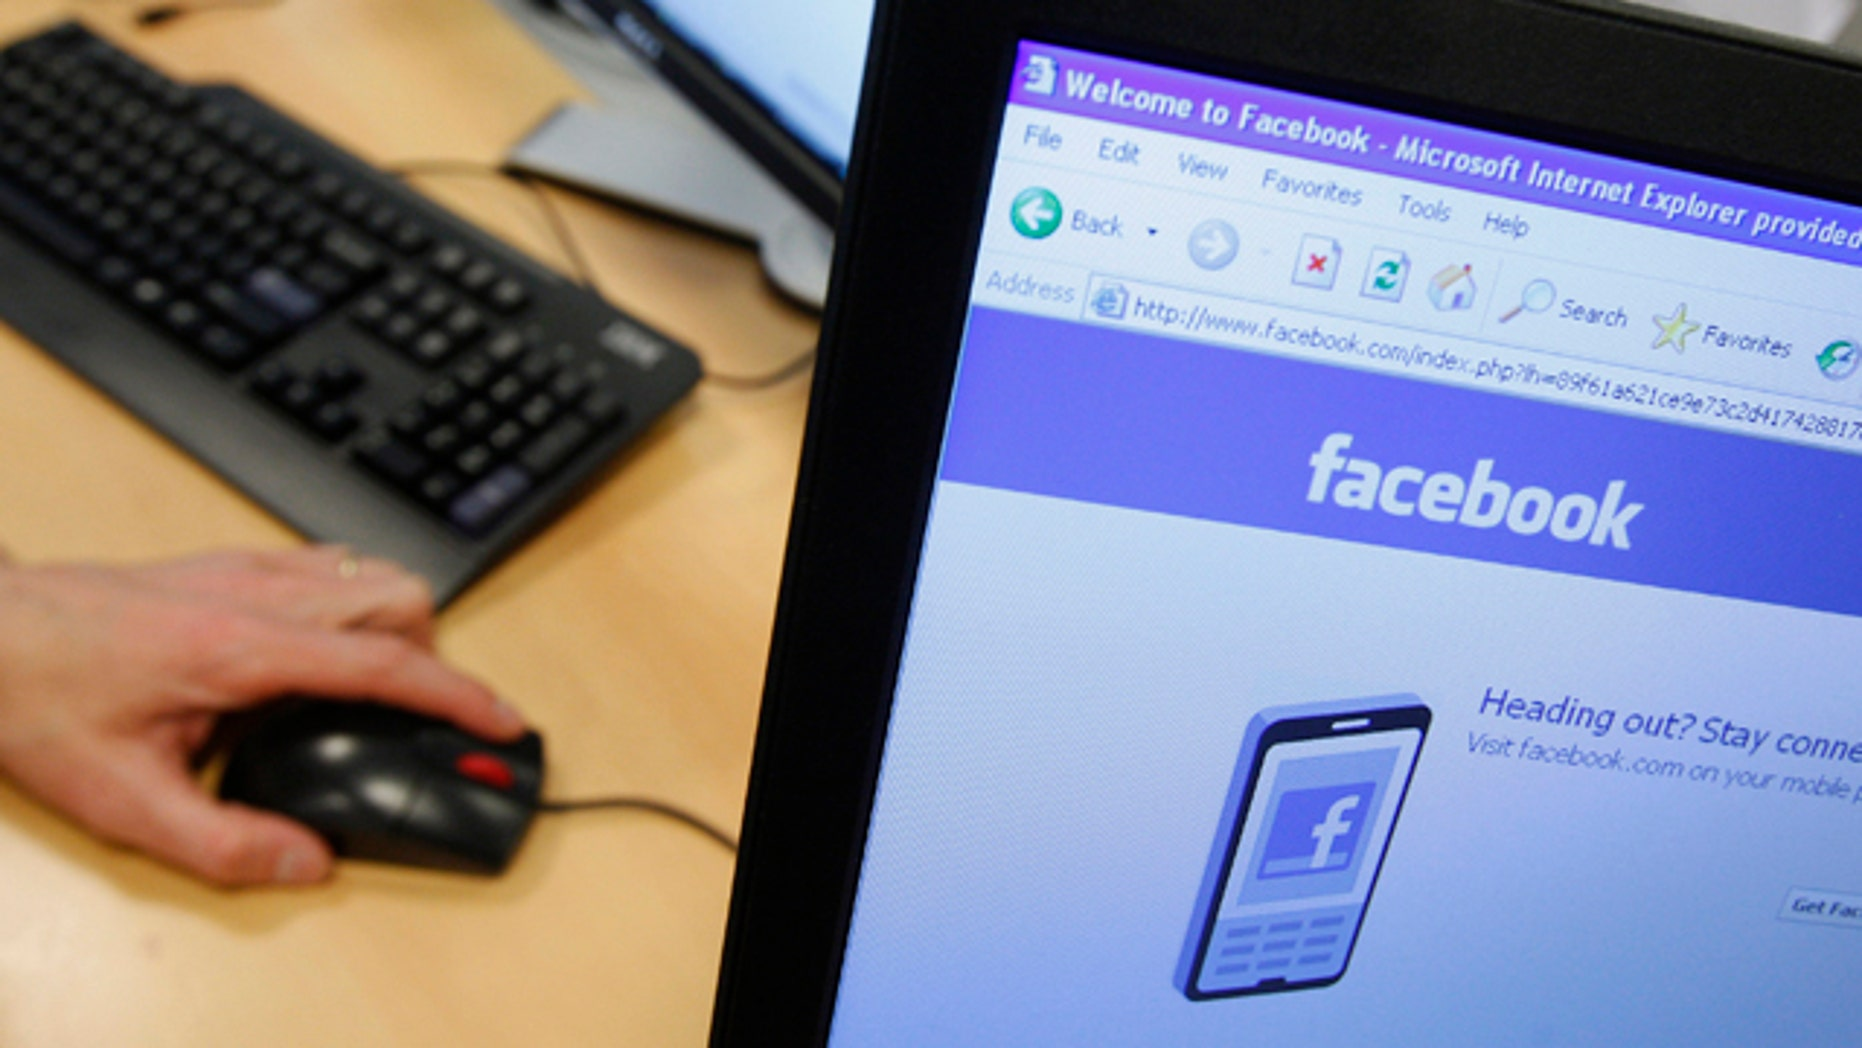 A Facebook page is displayed on a computer screen in Brussels April 21, 2010. Over the past six years, social networking has been the Internet's stand-out phenomenon, linking up more than one billion people eager to exchange videos, pictures or last-minute birthday wishes.  To match feature: INTERNET-SOCIALMEDIA/PRIVACY REUTERS/Thierry Roge   (BELGIUM - Tags: SOCIETY BUSINESS)